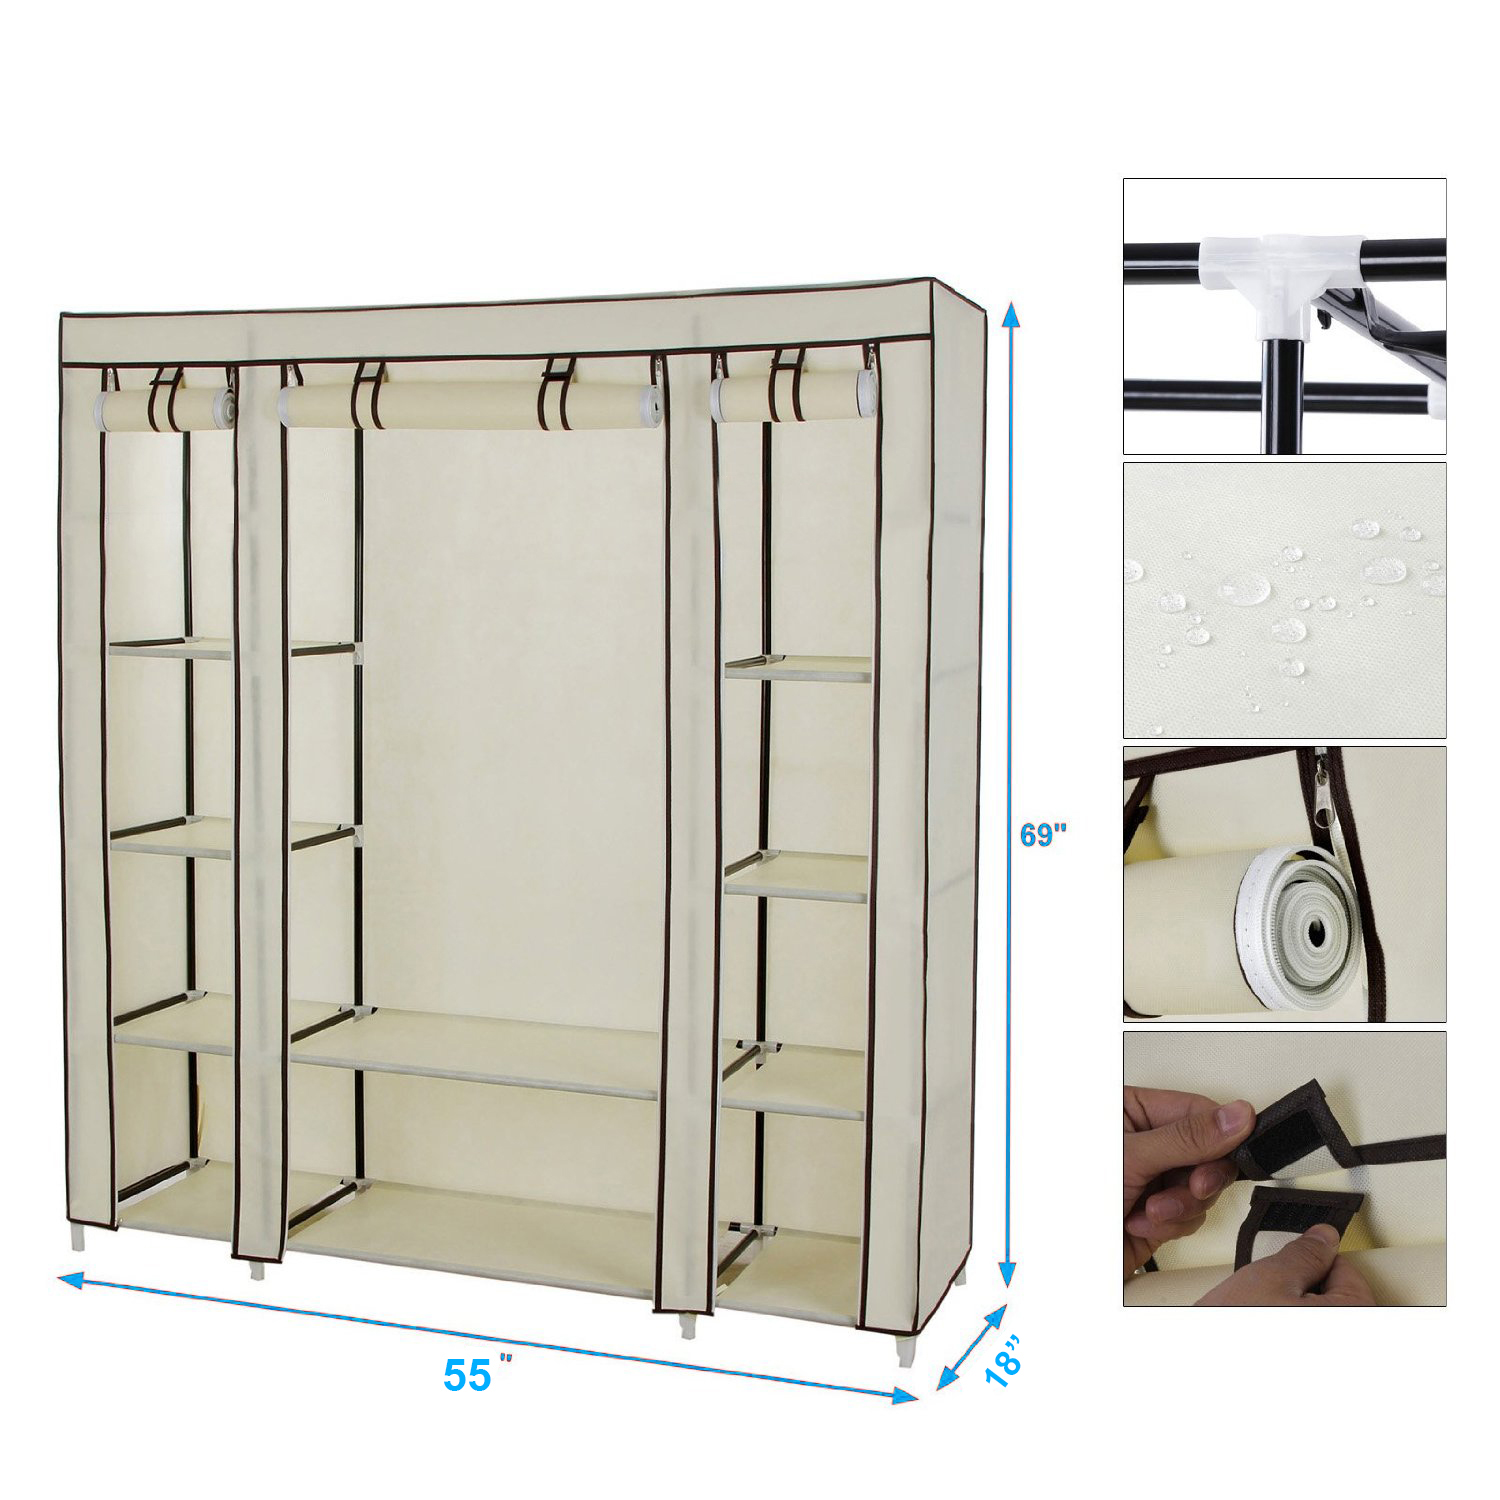 "54"" x 69"" Portable Closet Storage Organizer Wardrobe Clothes Rack with Shelves"